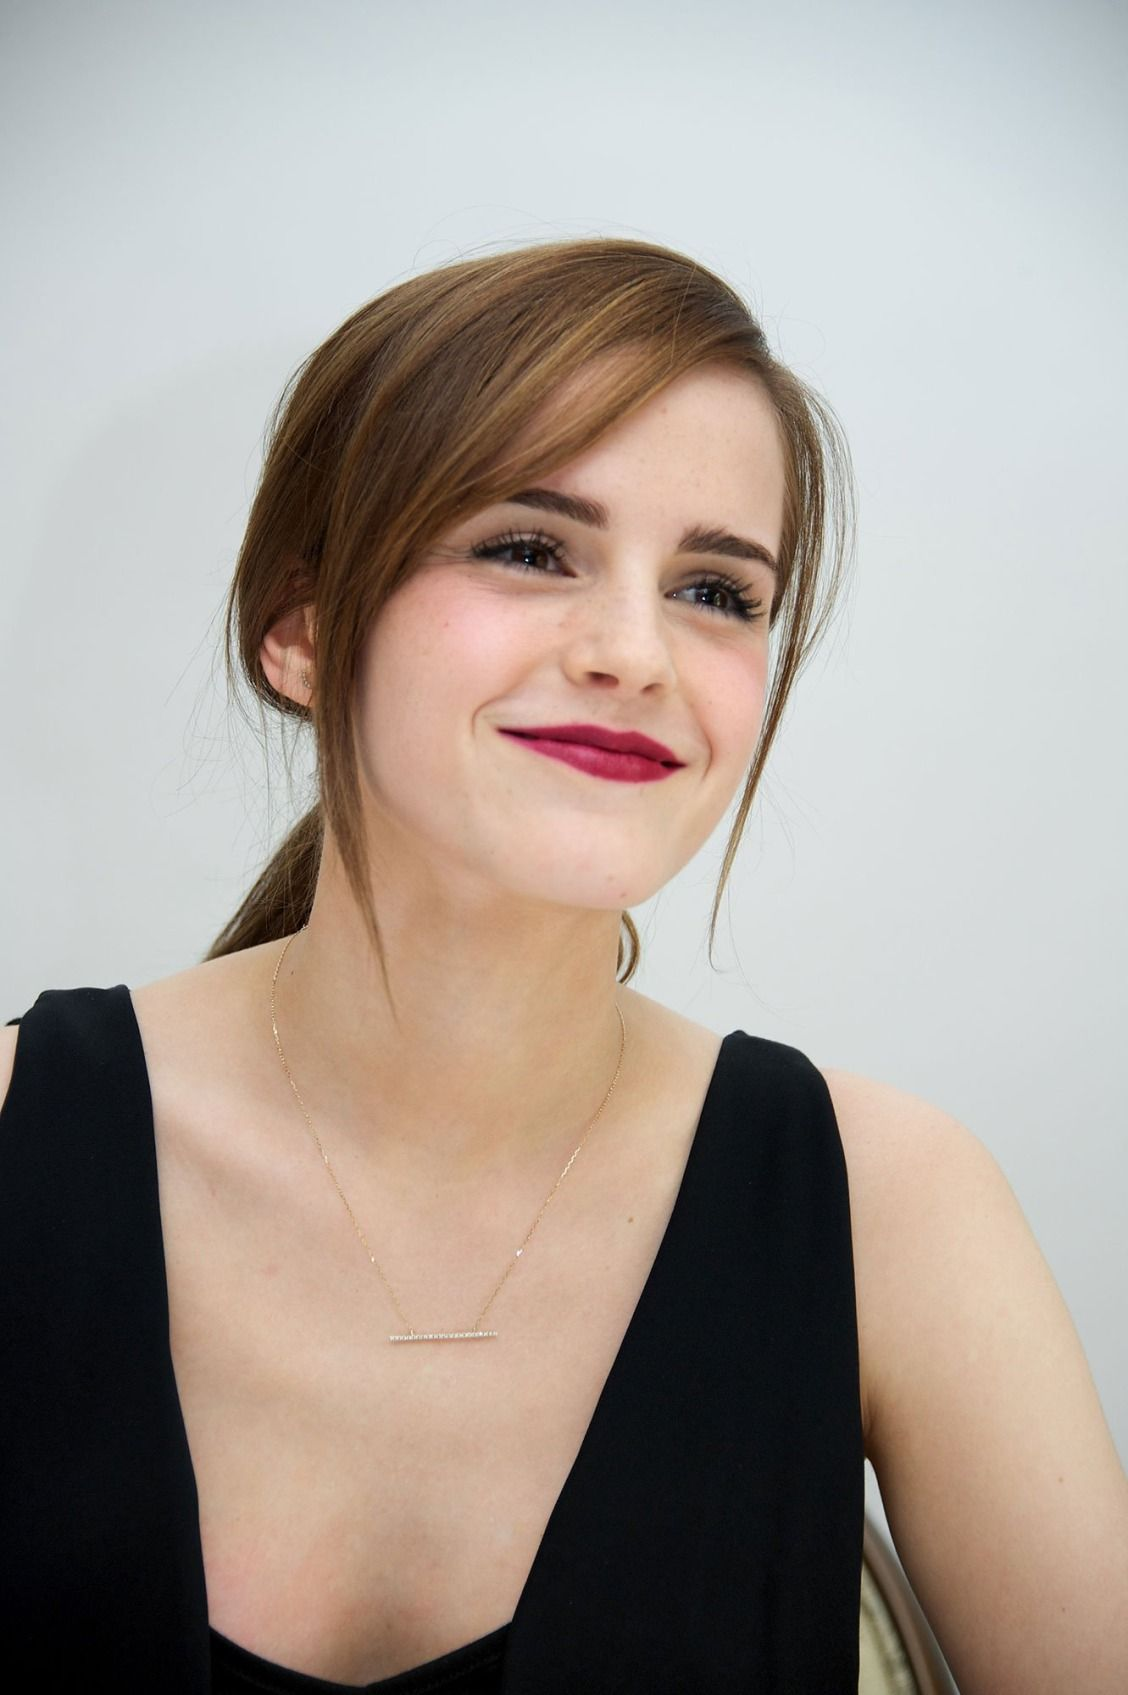 Emma Watson is revamping Beauty and the Beast's Belle into a feminist Disney Heroine.